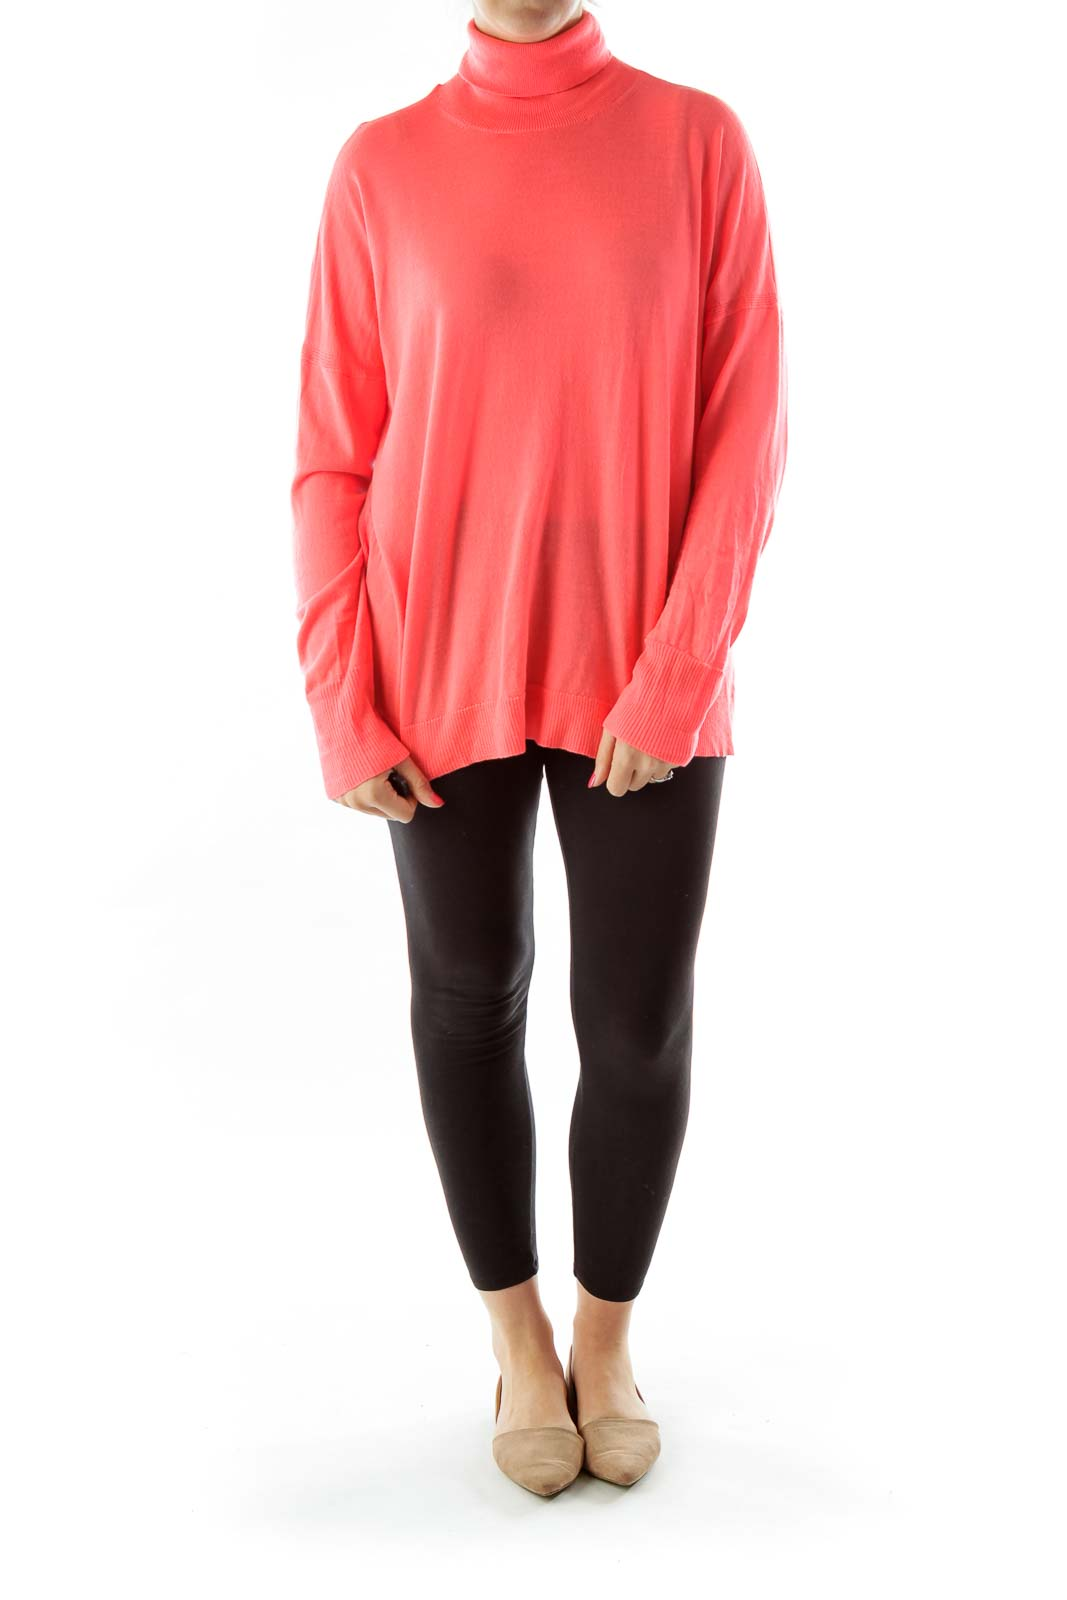 Salmon Turtle Neck Loose Top